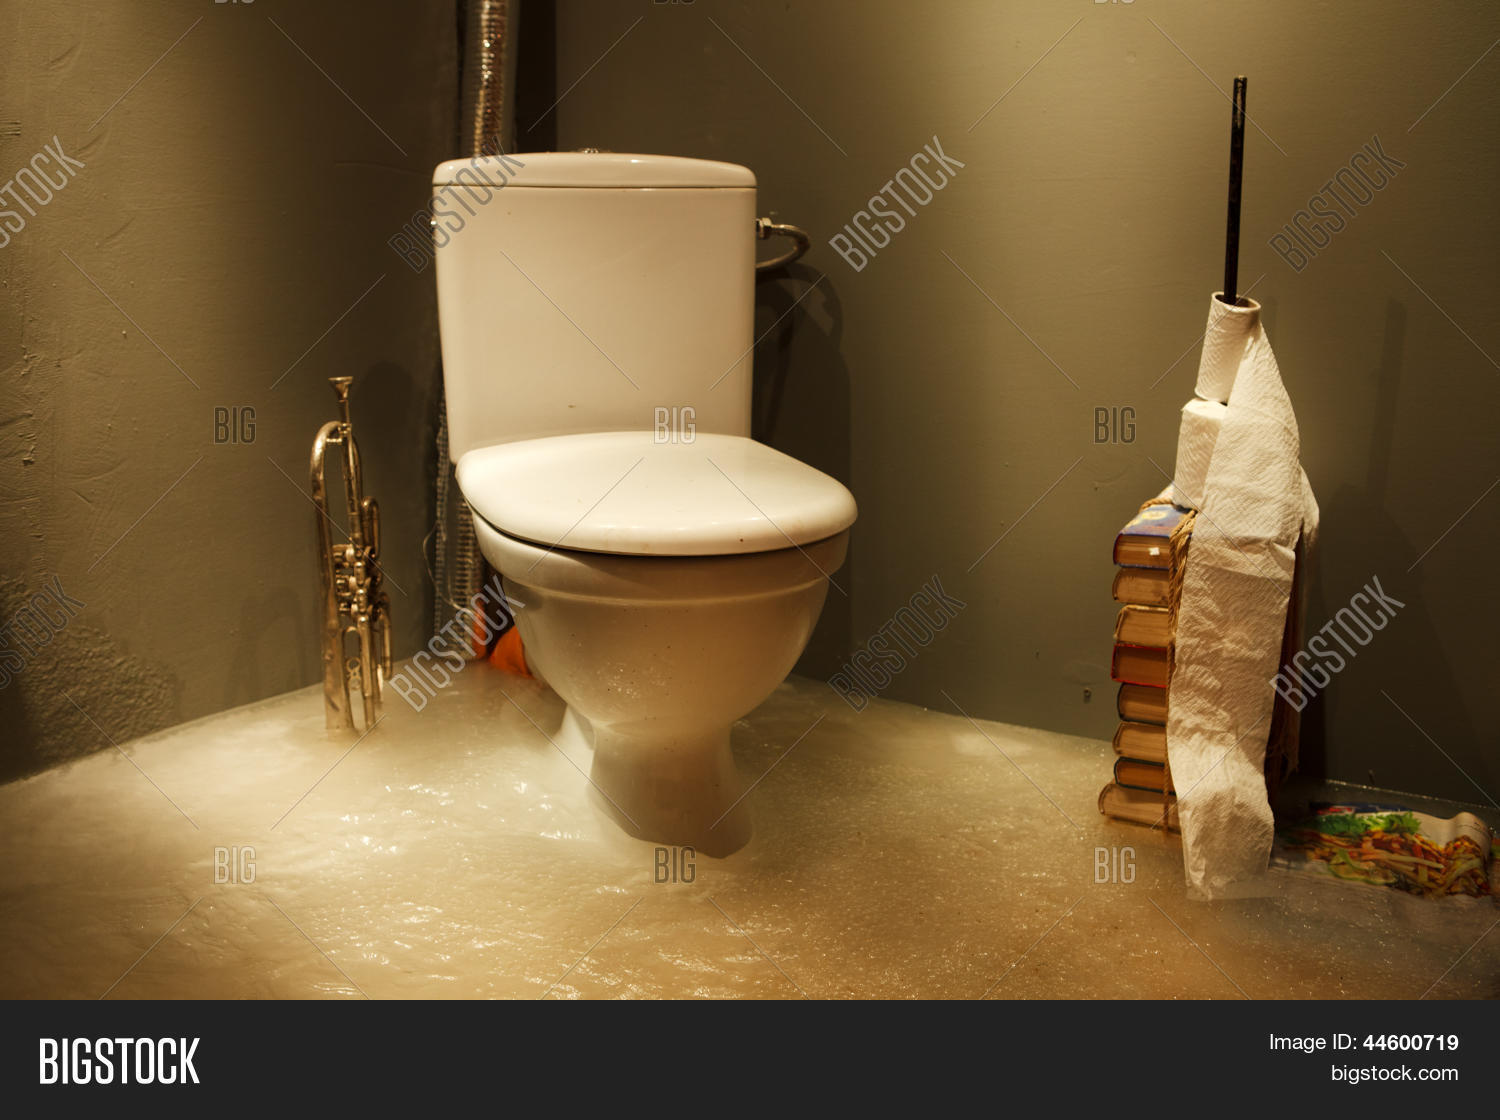 Frozen Bathroom Frozen Bathroom Image Photo Free Trial Bigstock